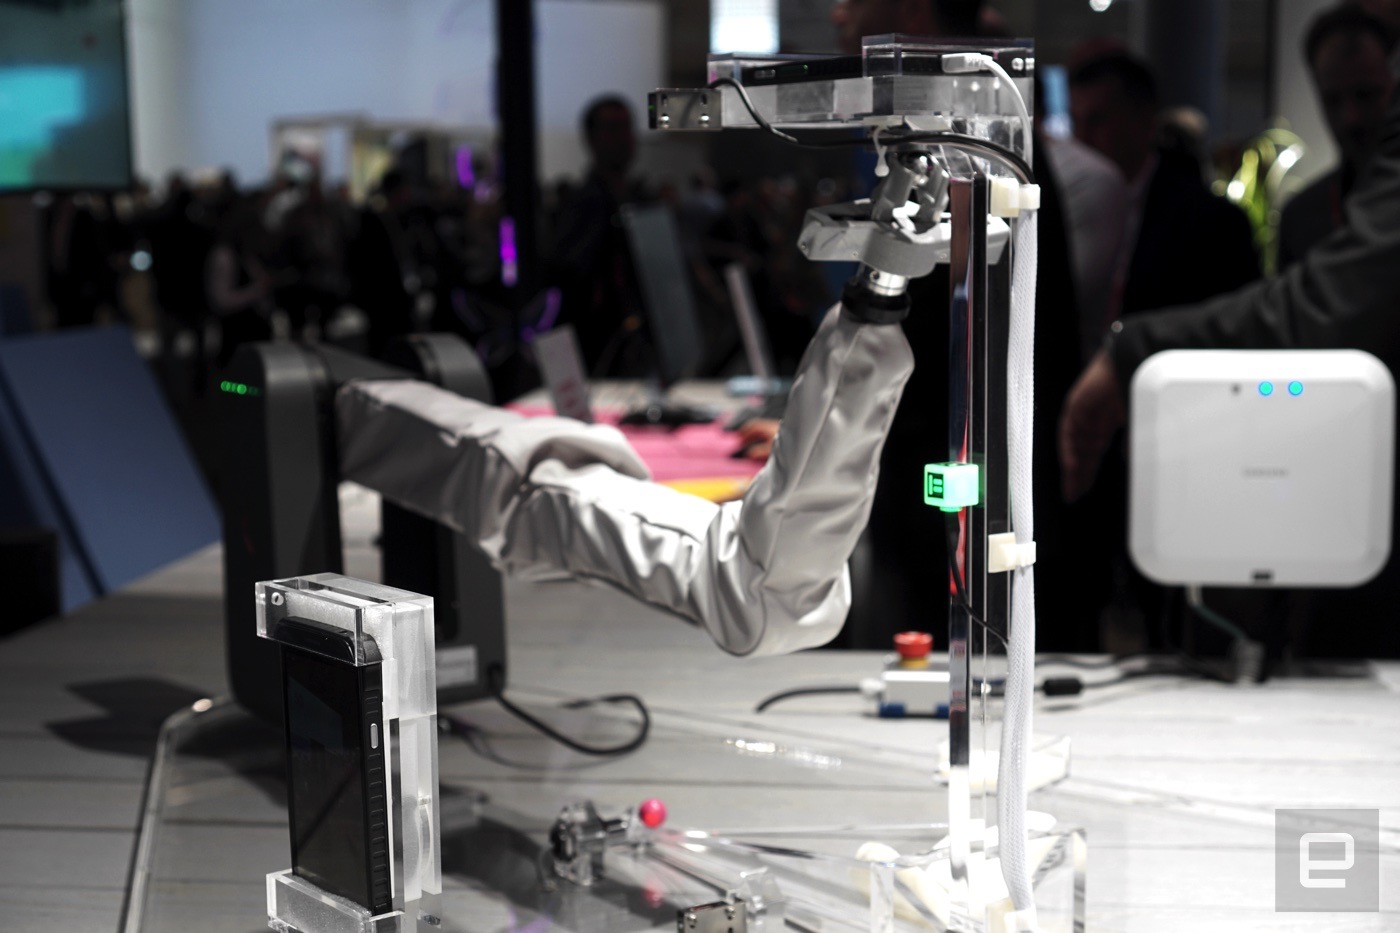 Samsung proves why 5G is necessary with a robot arm